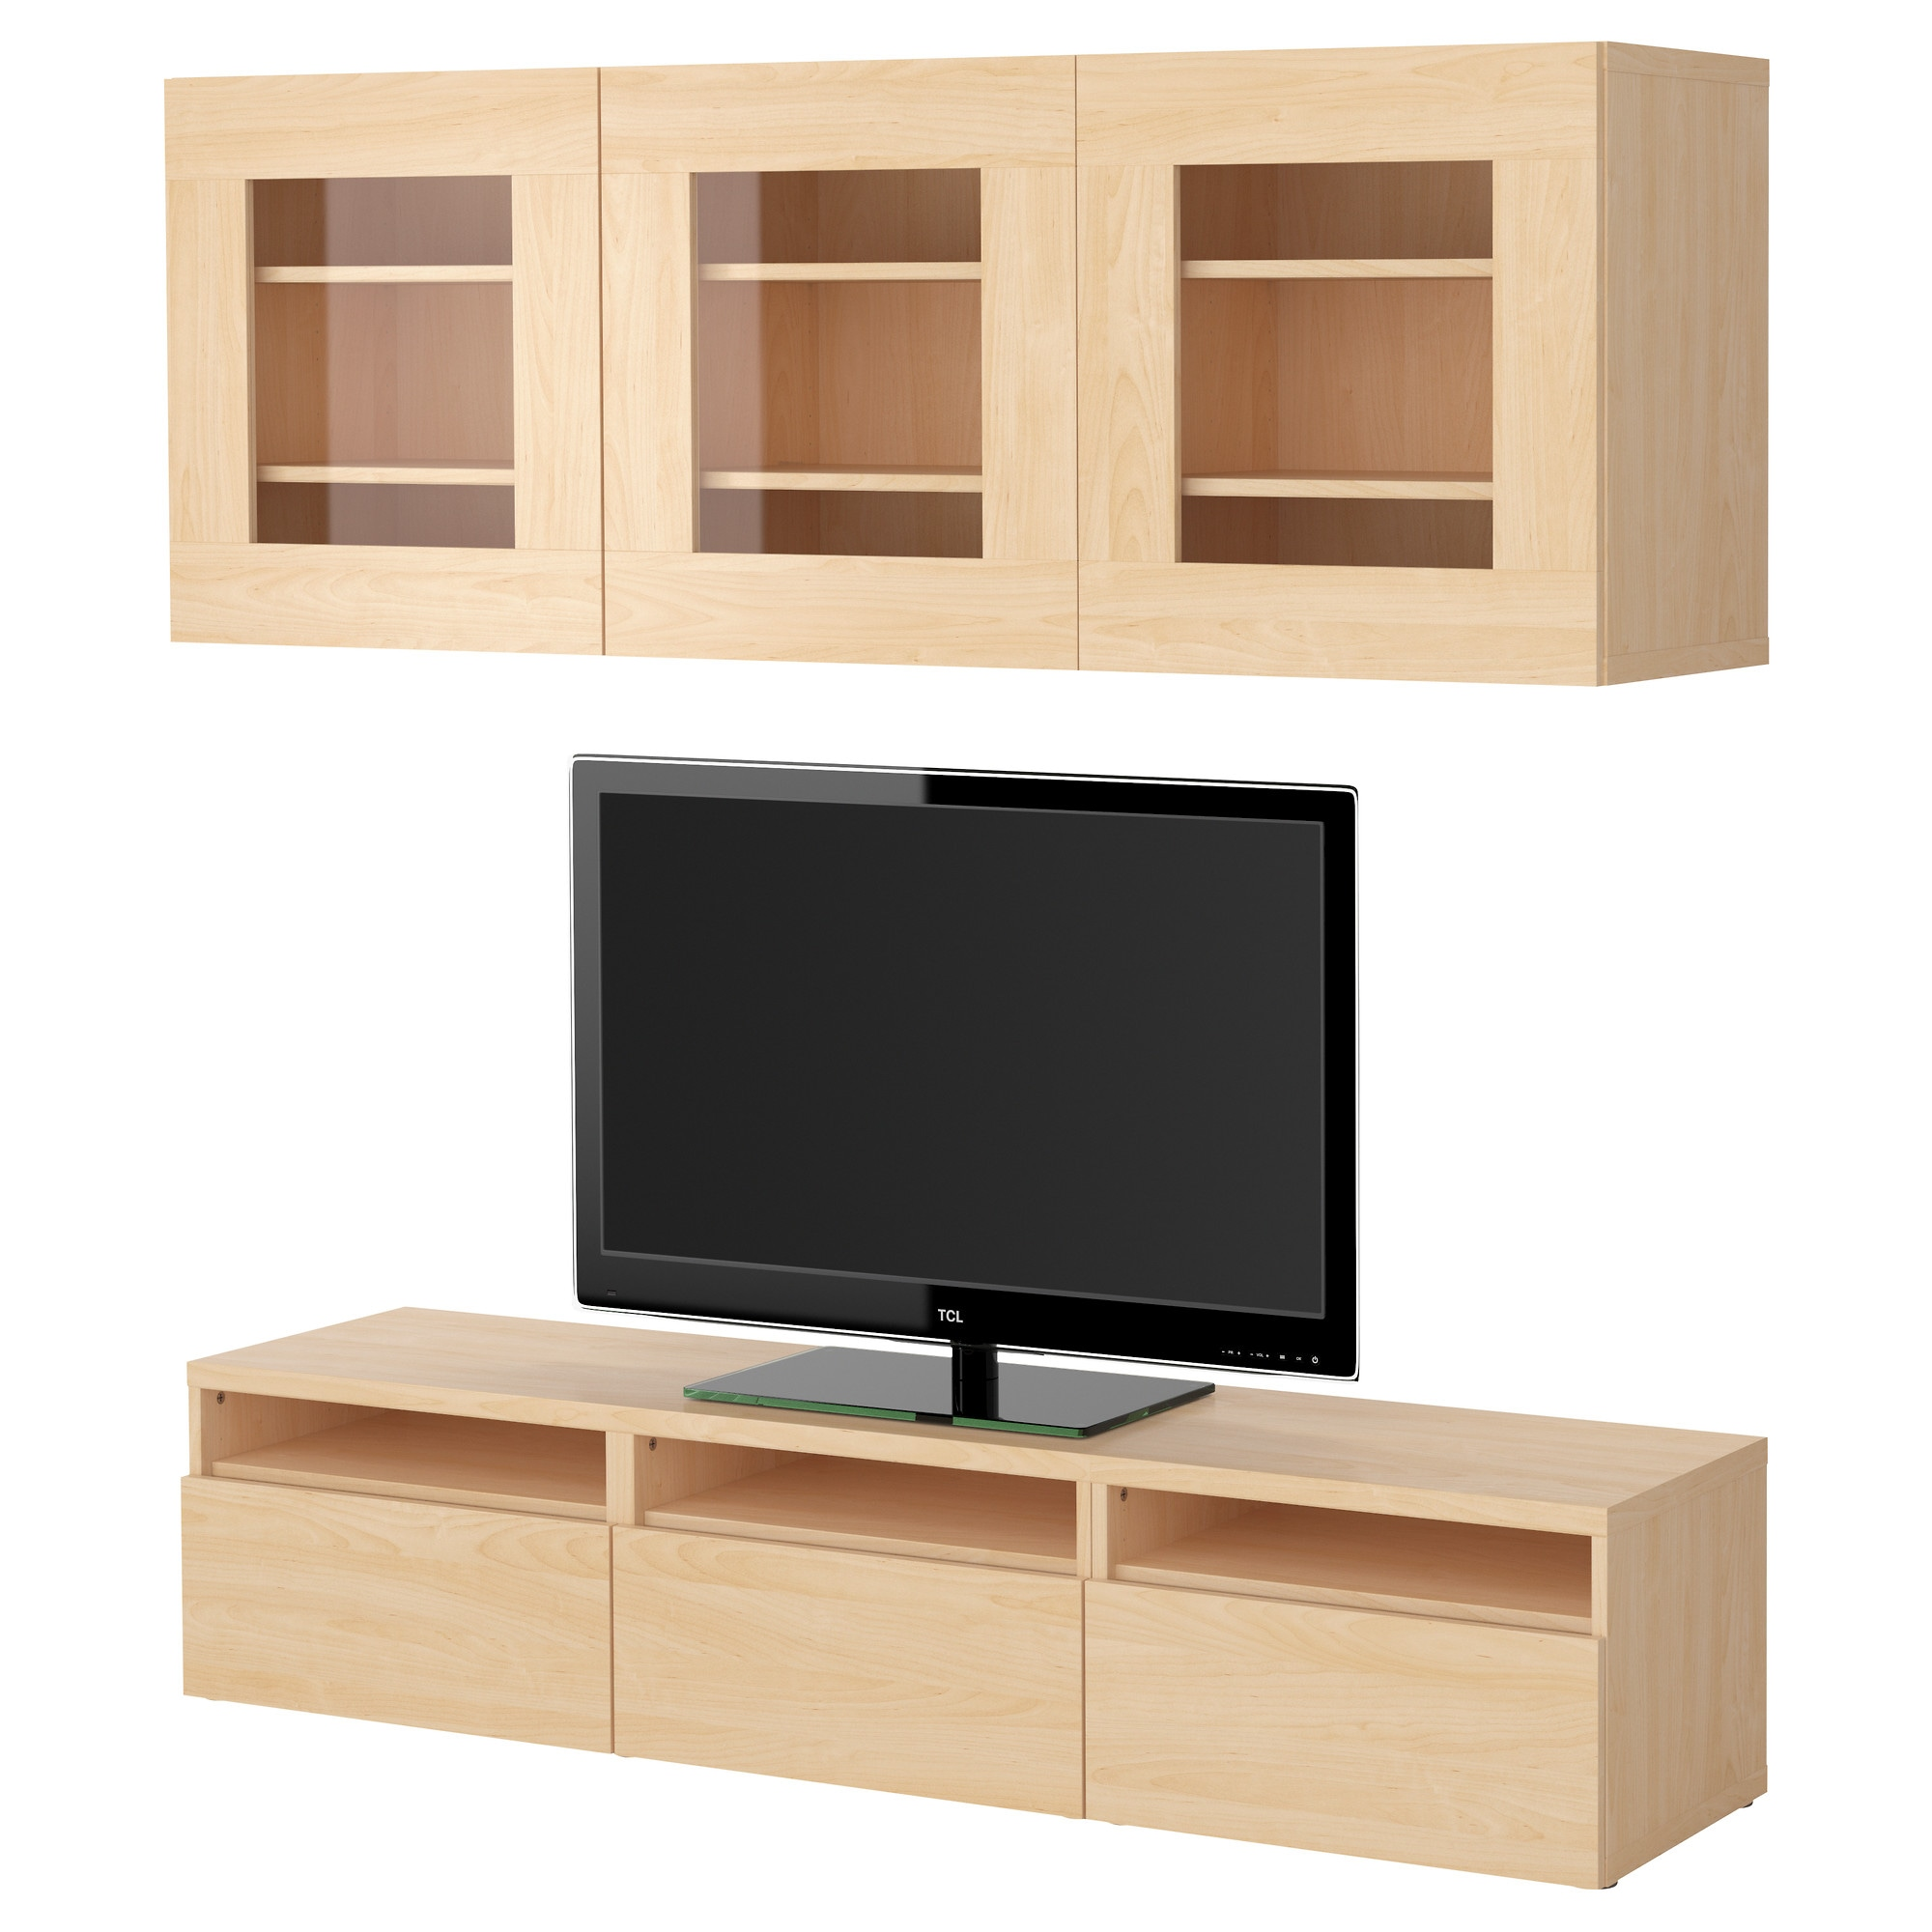 tv hideaway furniture modern diy art designs. Black Bedroom Furniture Sets. Home Design Ideas